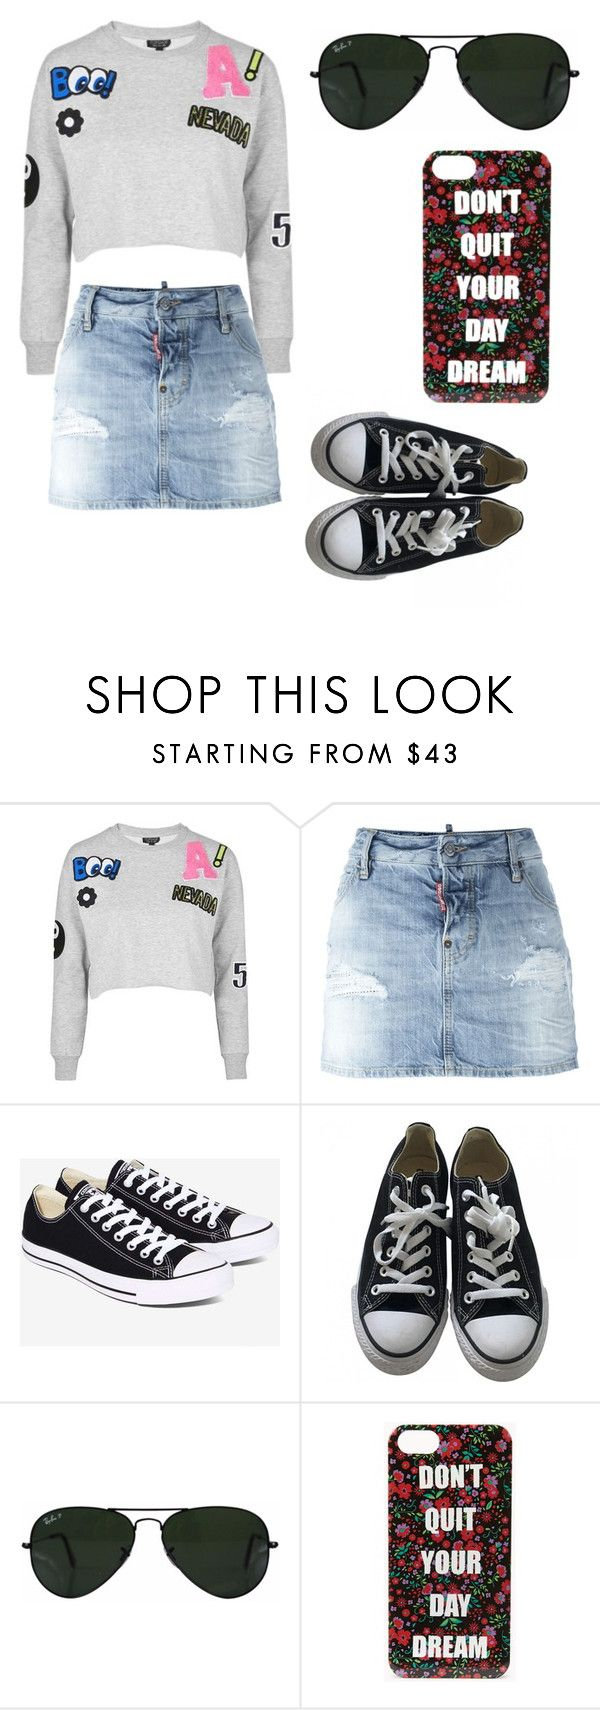 """""""Suggestions Tag"""" by peter-pan-in-wonderland ❤ liked on Polyvore featuring interior, interiors, interior design, home, home decor, interior decorating, Topshop, Dsquared2, Converse and Ray-Ban"""